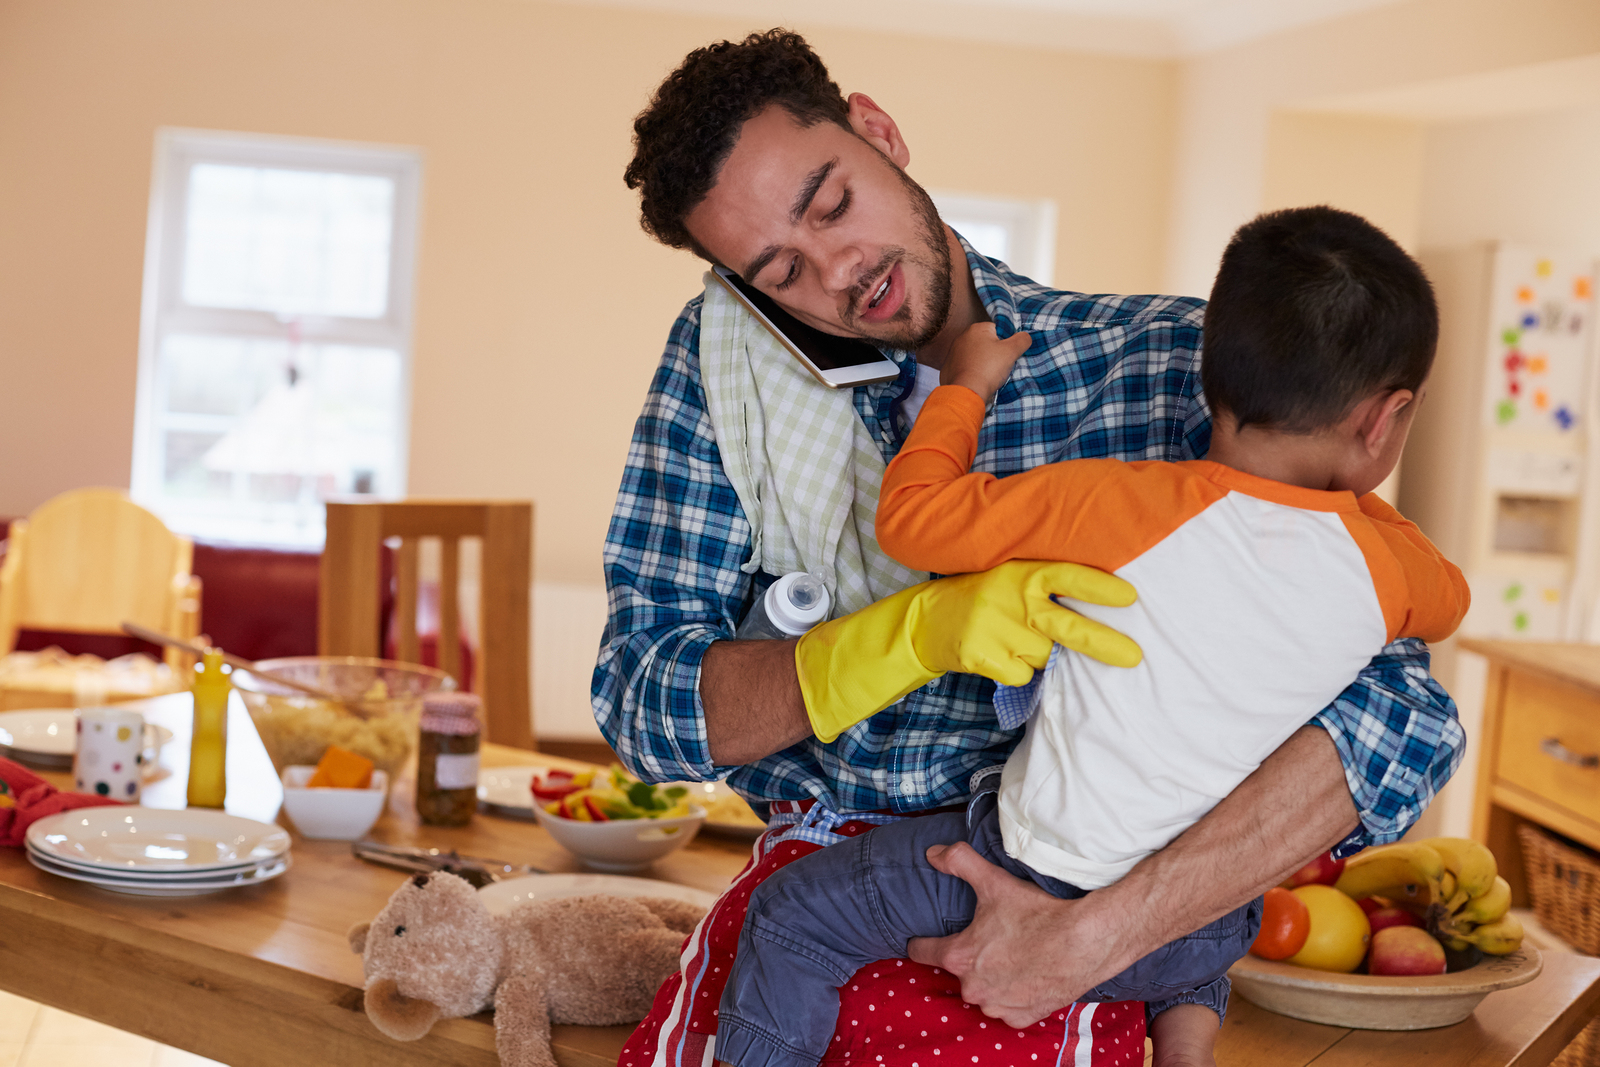 Although often considered rare, the number of stay-at-home dads is rising.